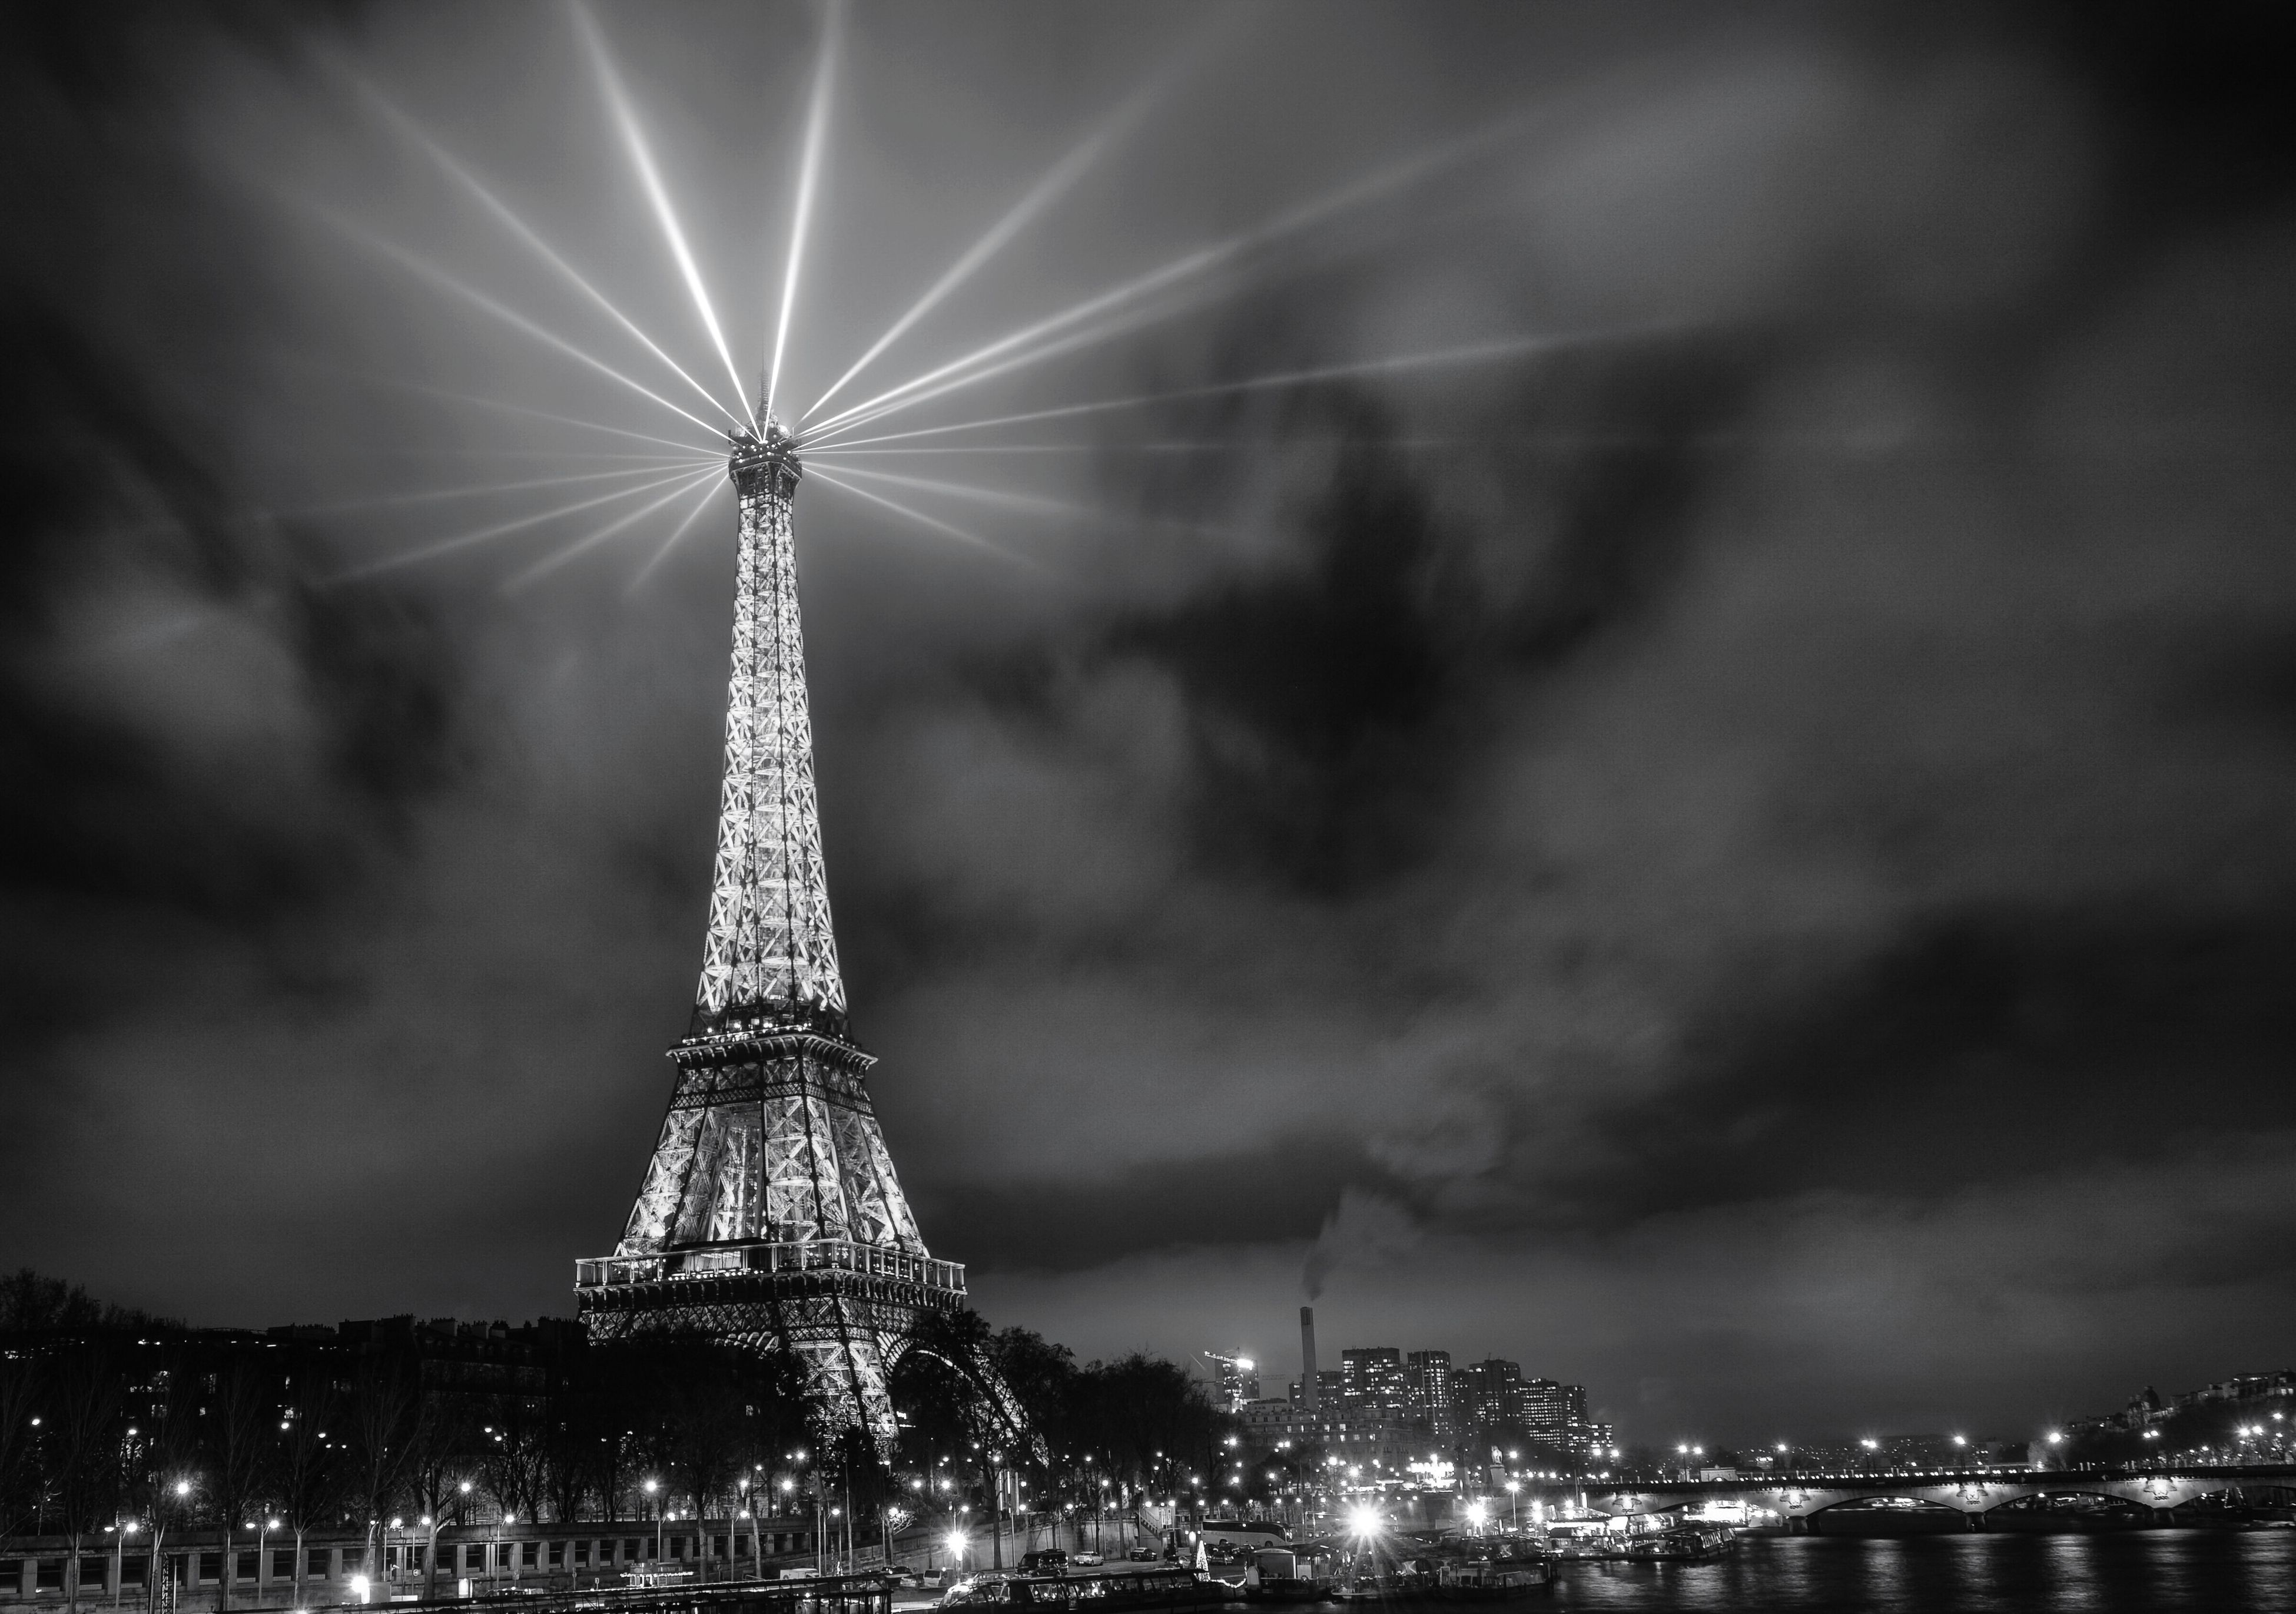 night, architecture, built structure, international landmark, travel destinations, illuminated, sky, famous place, city, capital cities, tourism, travel, eiffel tower, building exterior, cityscape, tall - high, tower, low angle view, cloud - sky, dusk